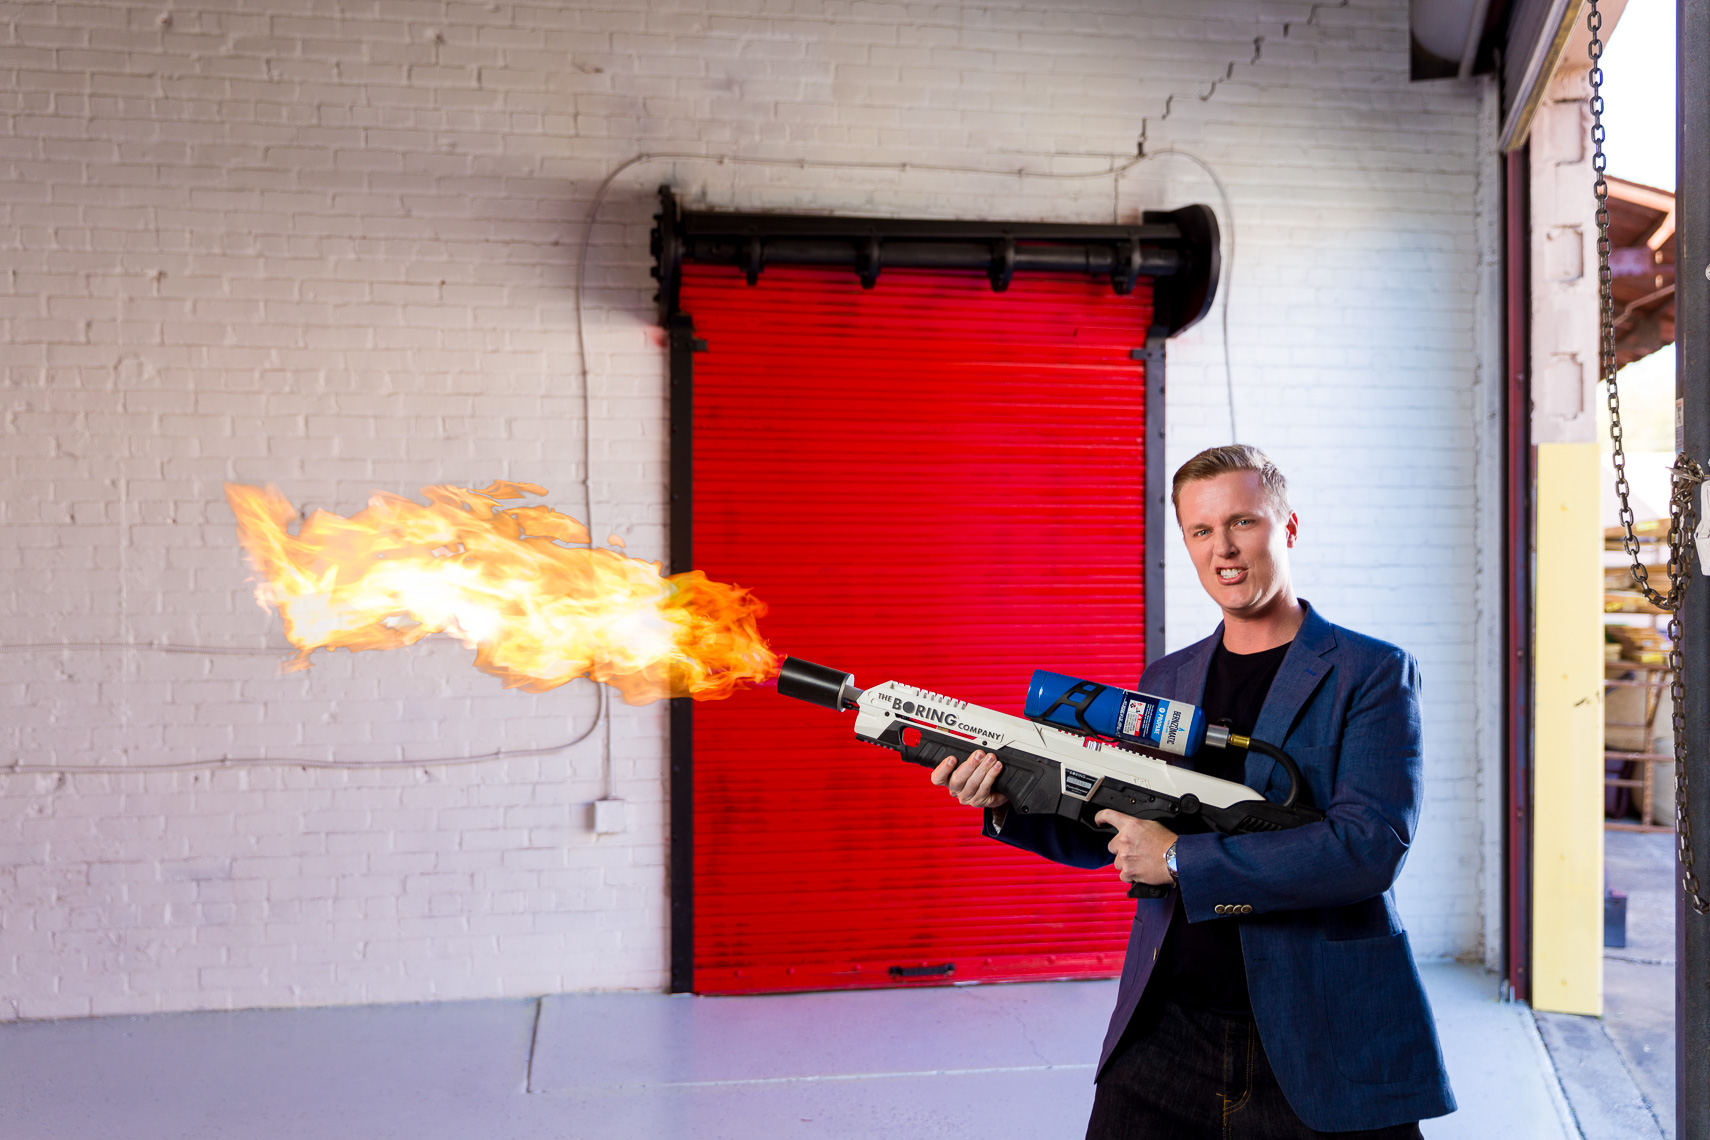 Corporate portraits with a flame thrower and a red door